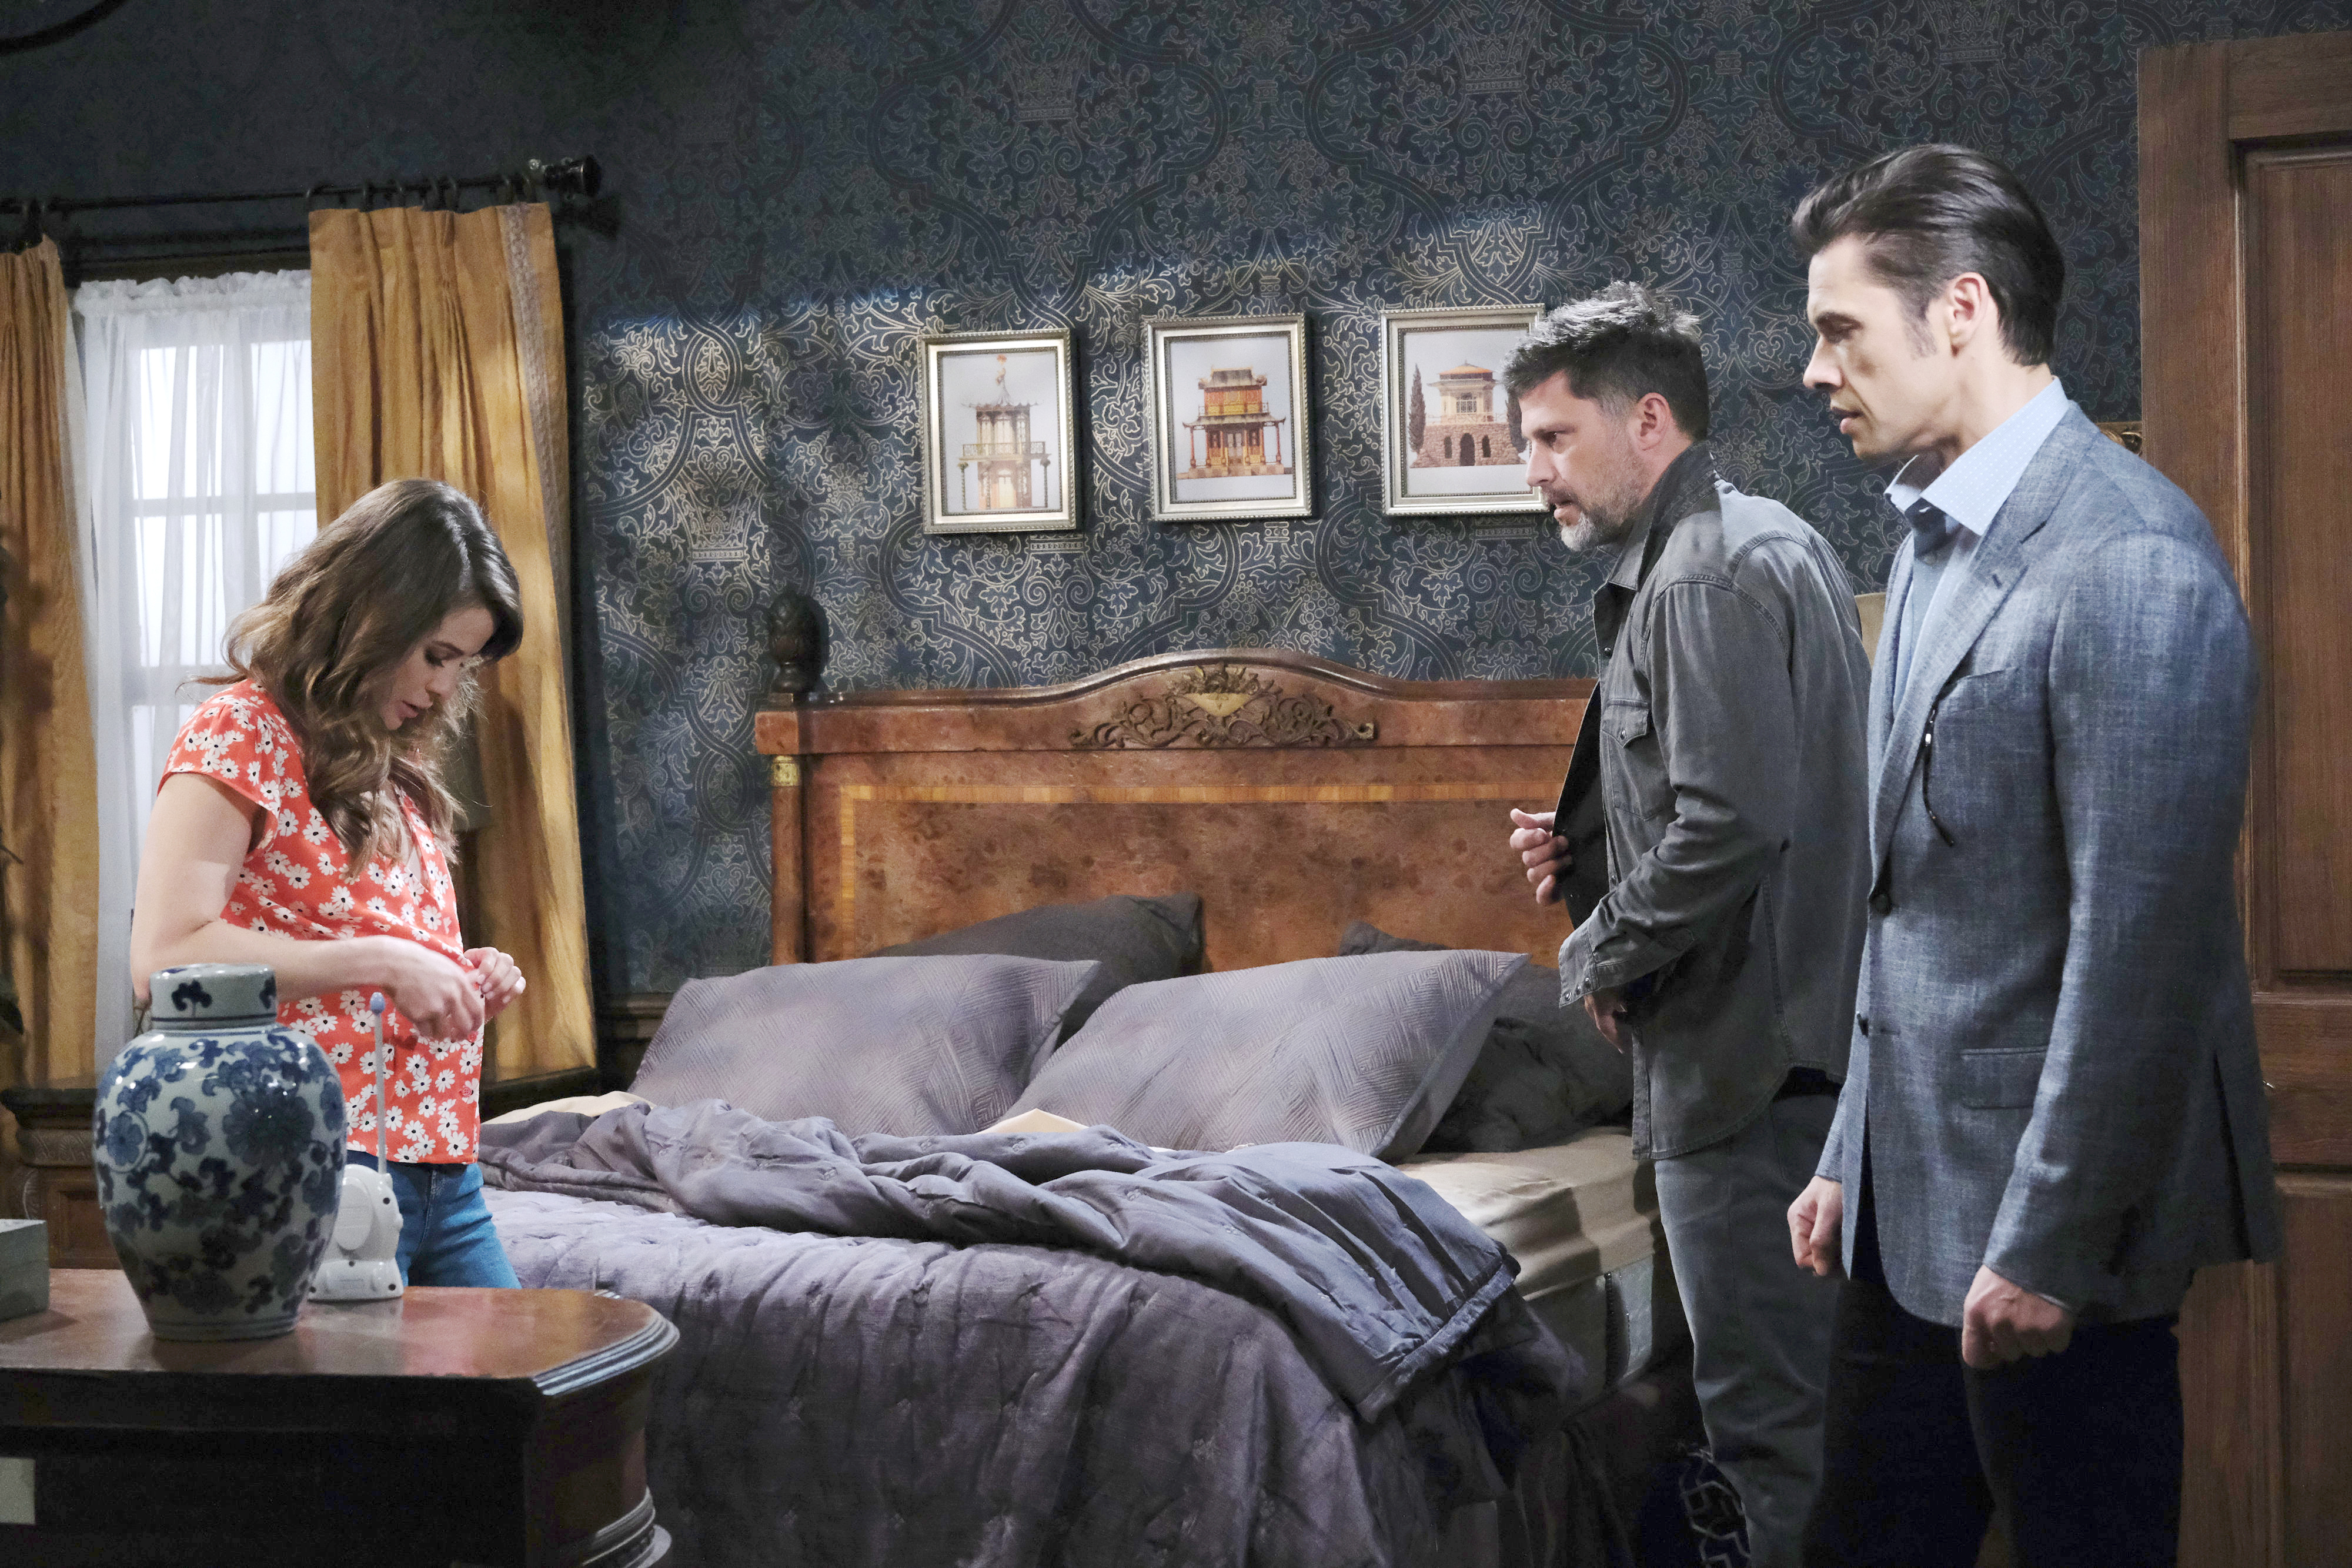 Eric, Sarah and Xander who walks in on them